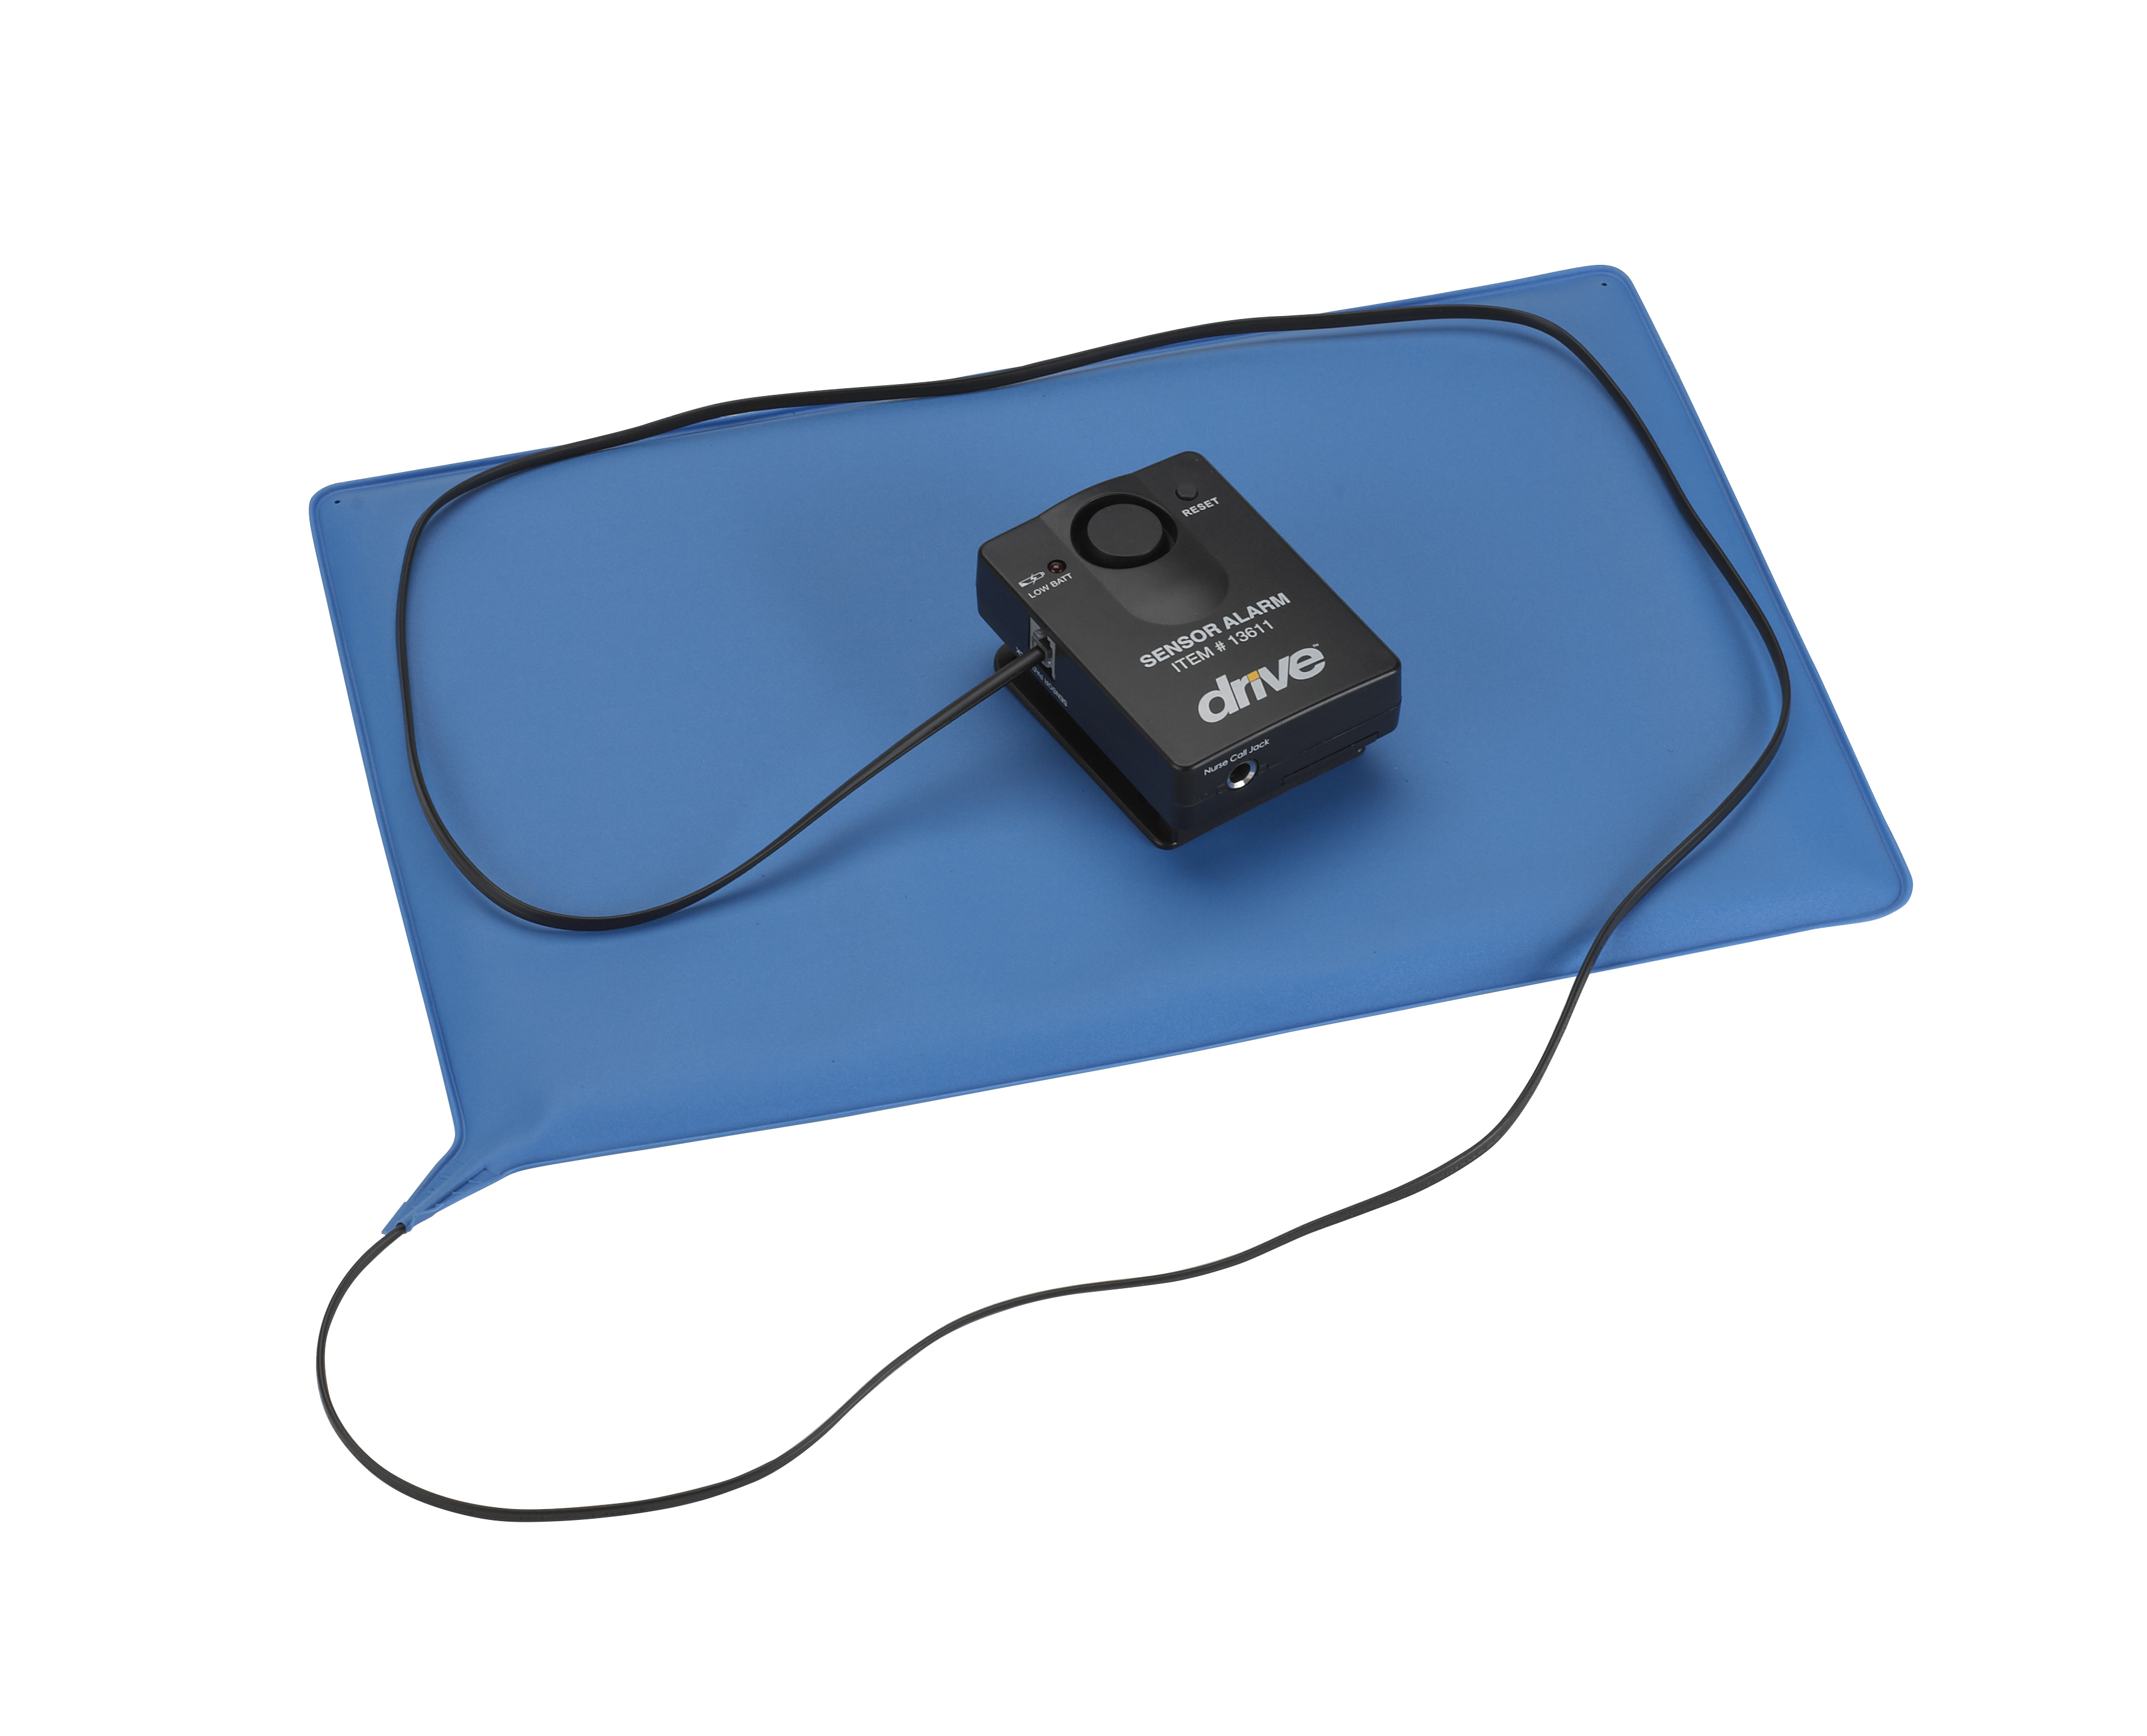 Pressure Sensitive Bed Chair Patient Alarm with Reset Button, 10